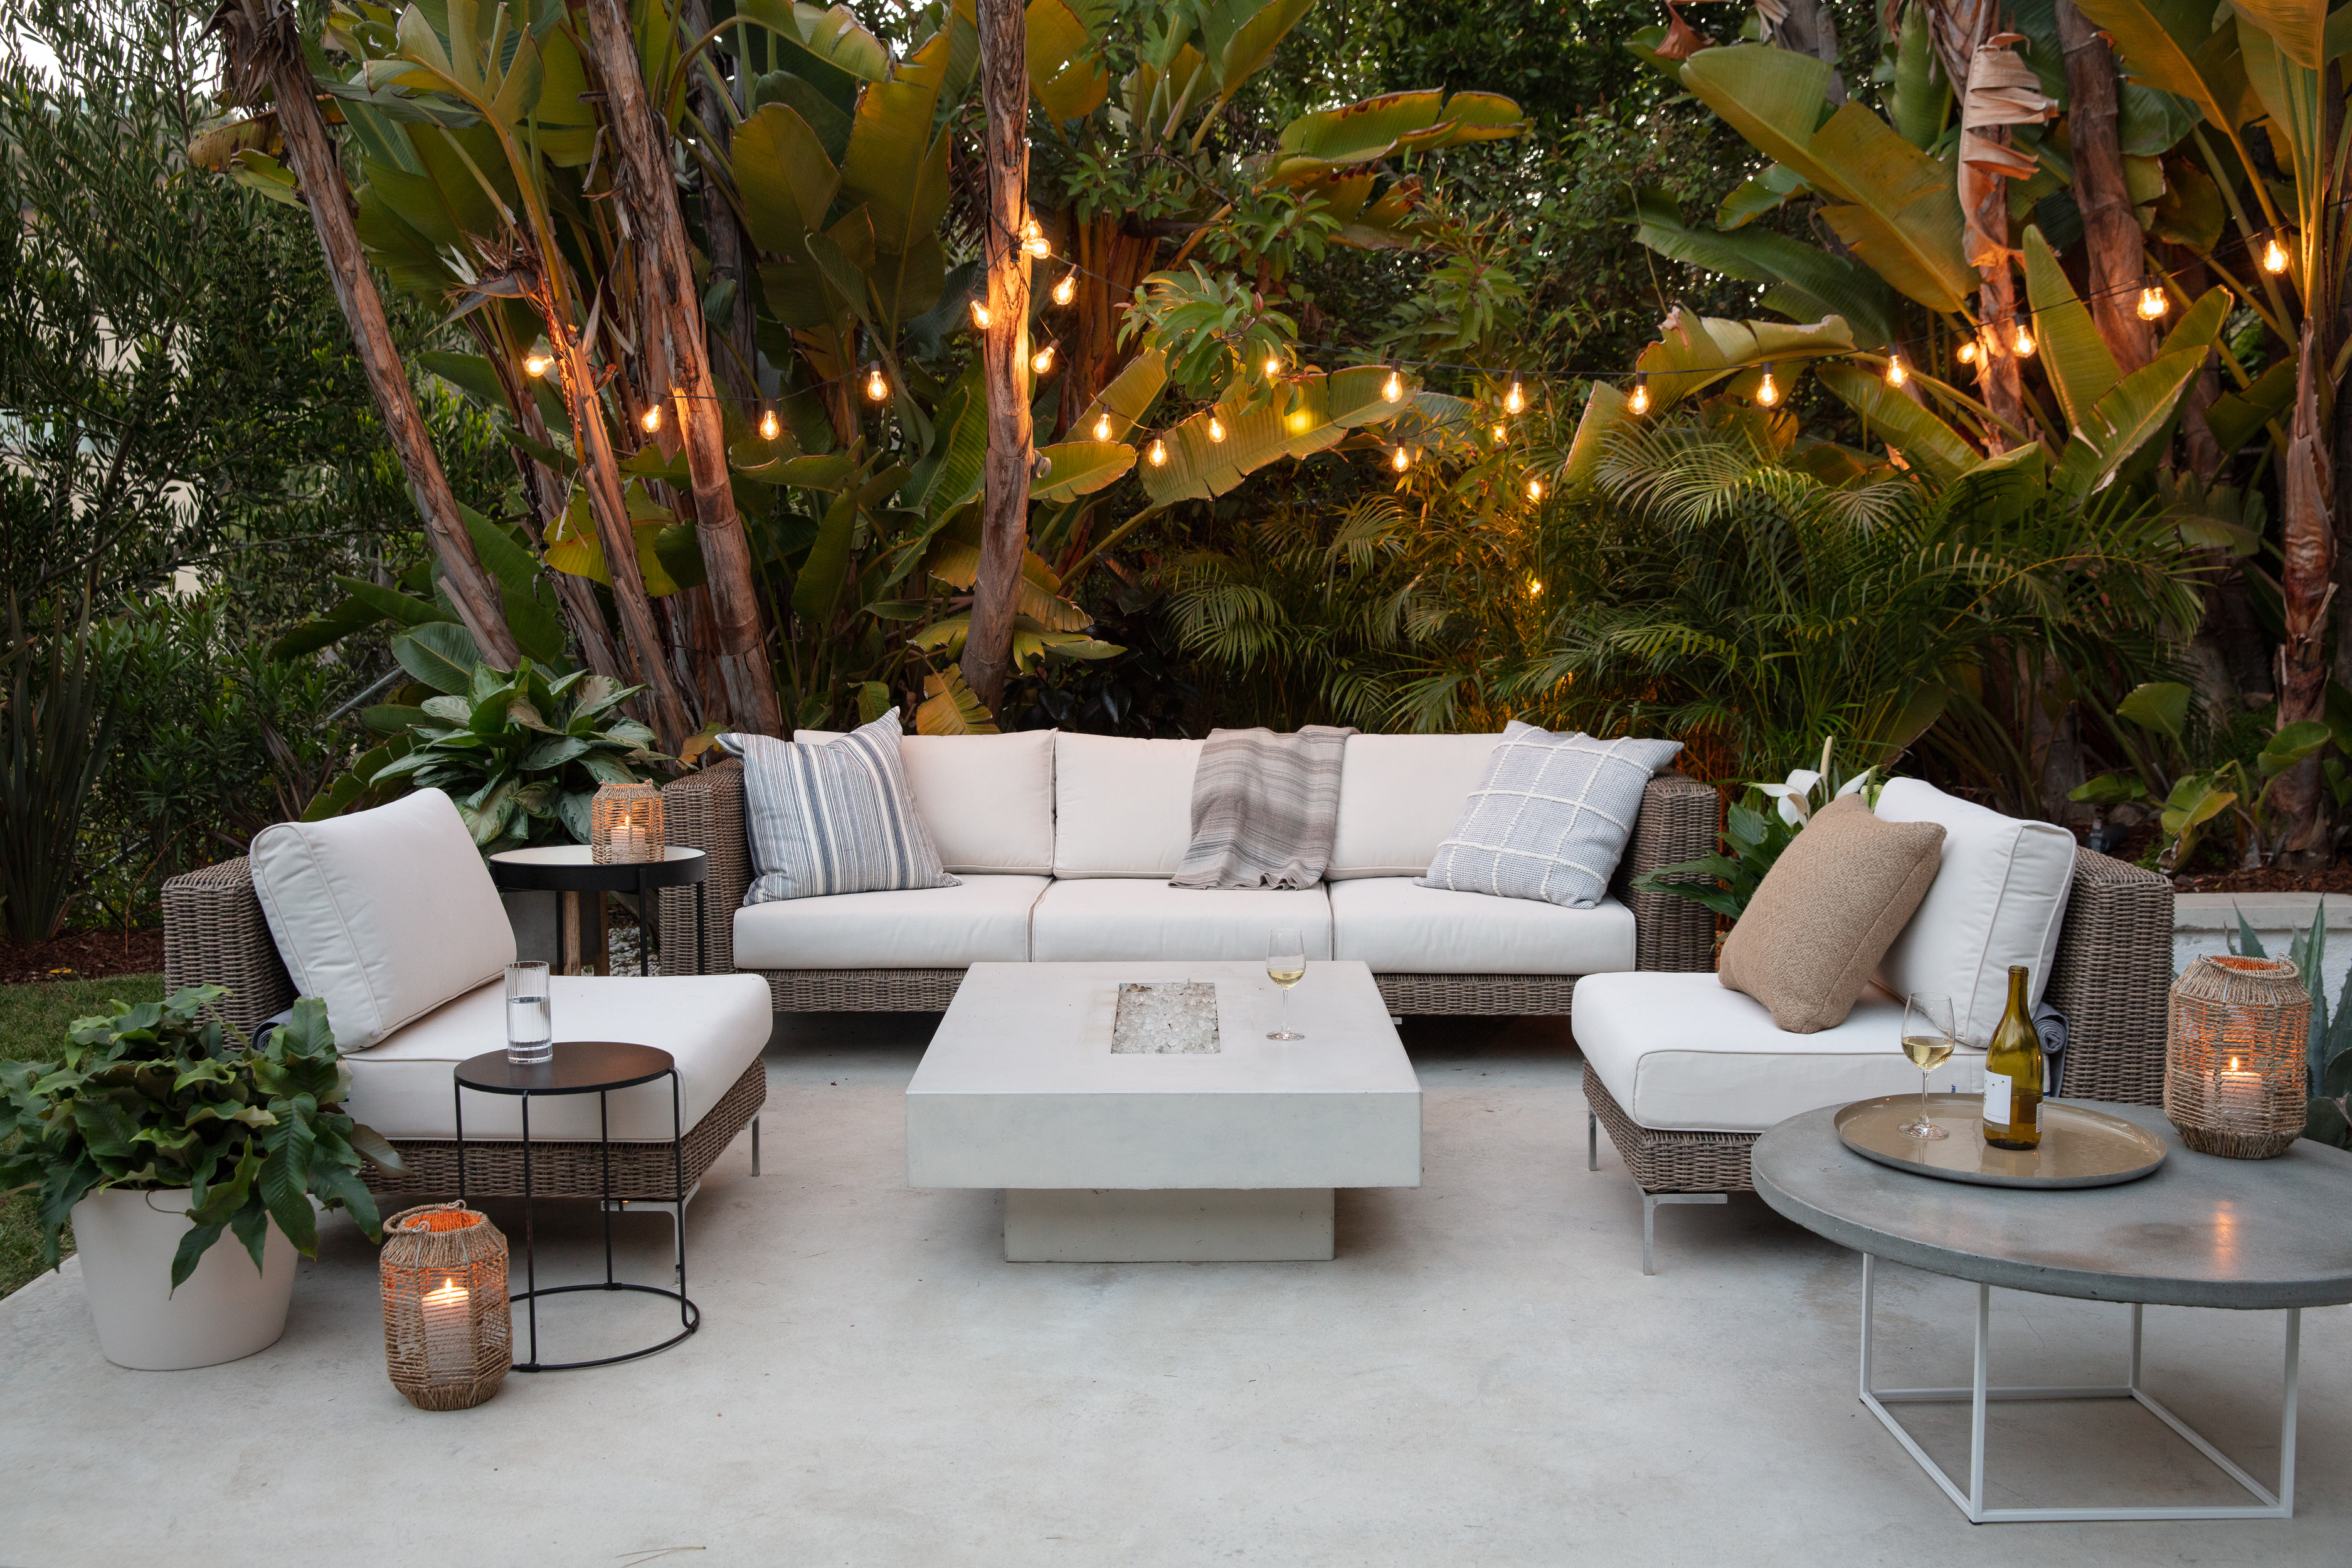 Backyard Decor Ideas Thatll Turn Your Outdoor Space Into A Summer Oasis intended for Patio Backyard Design Ideas